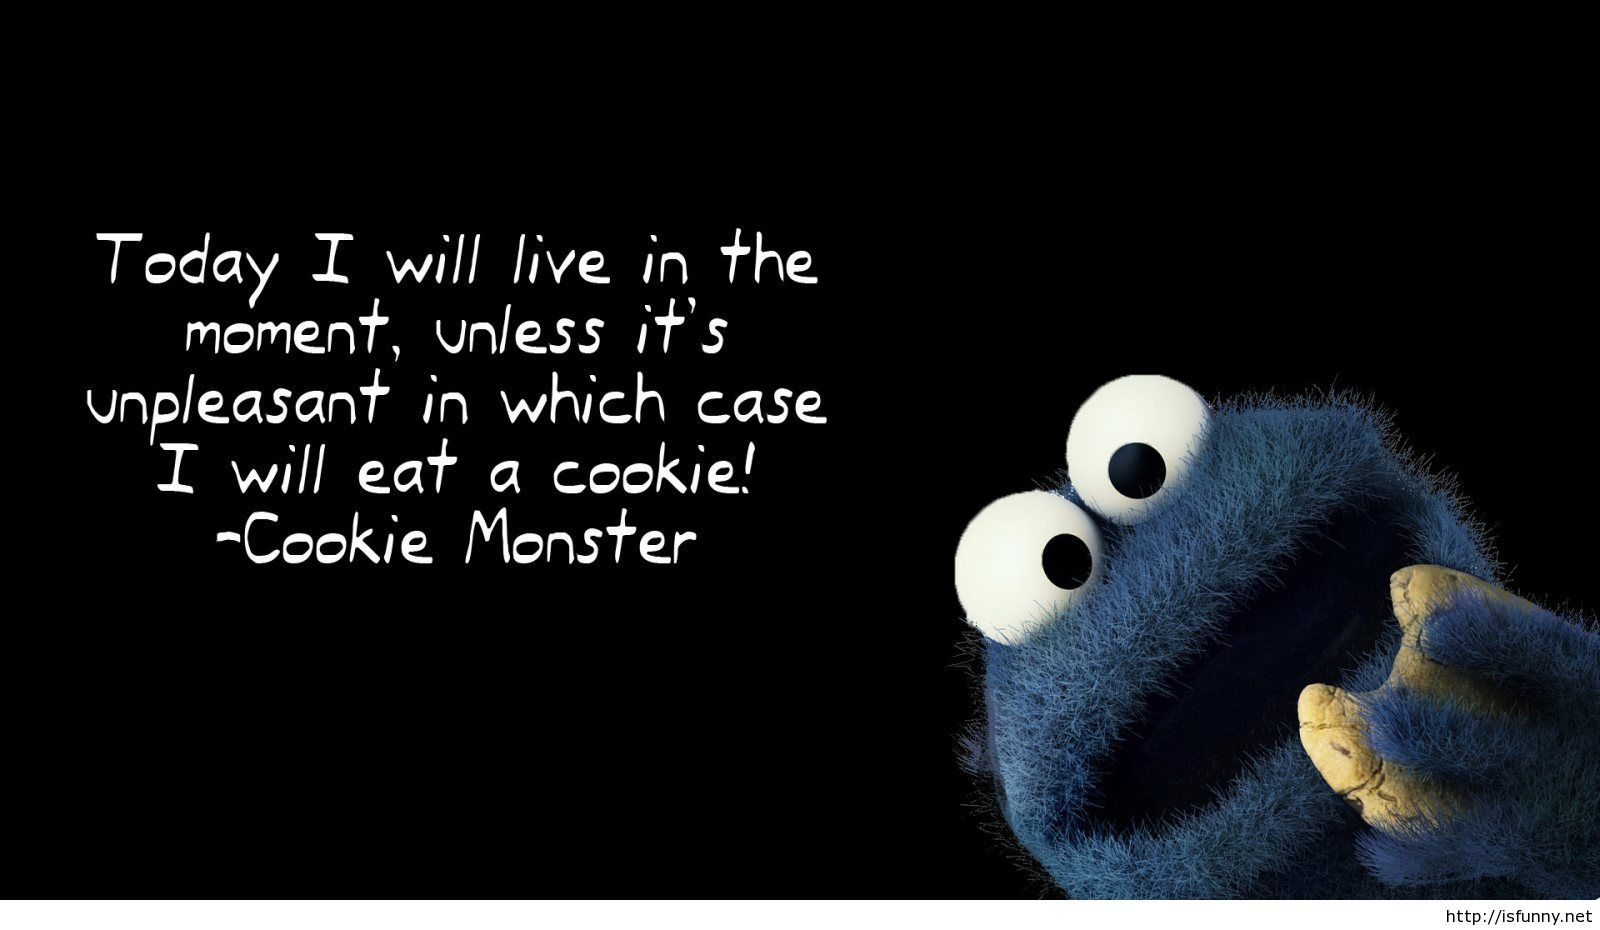 Funny Cookie Monster Wallpaper Quote Isfunny